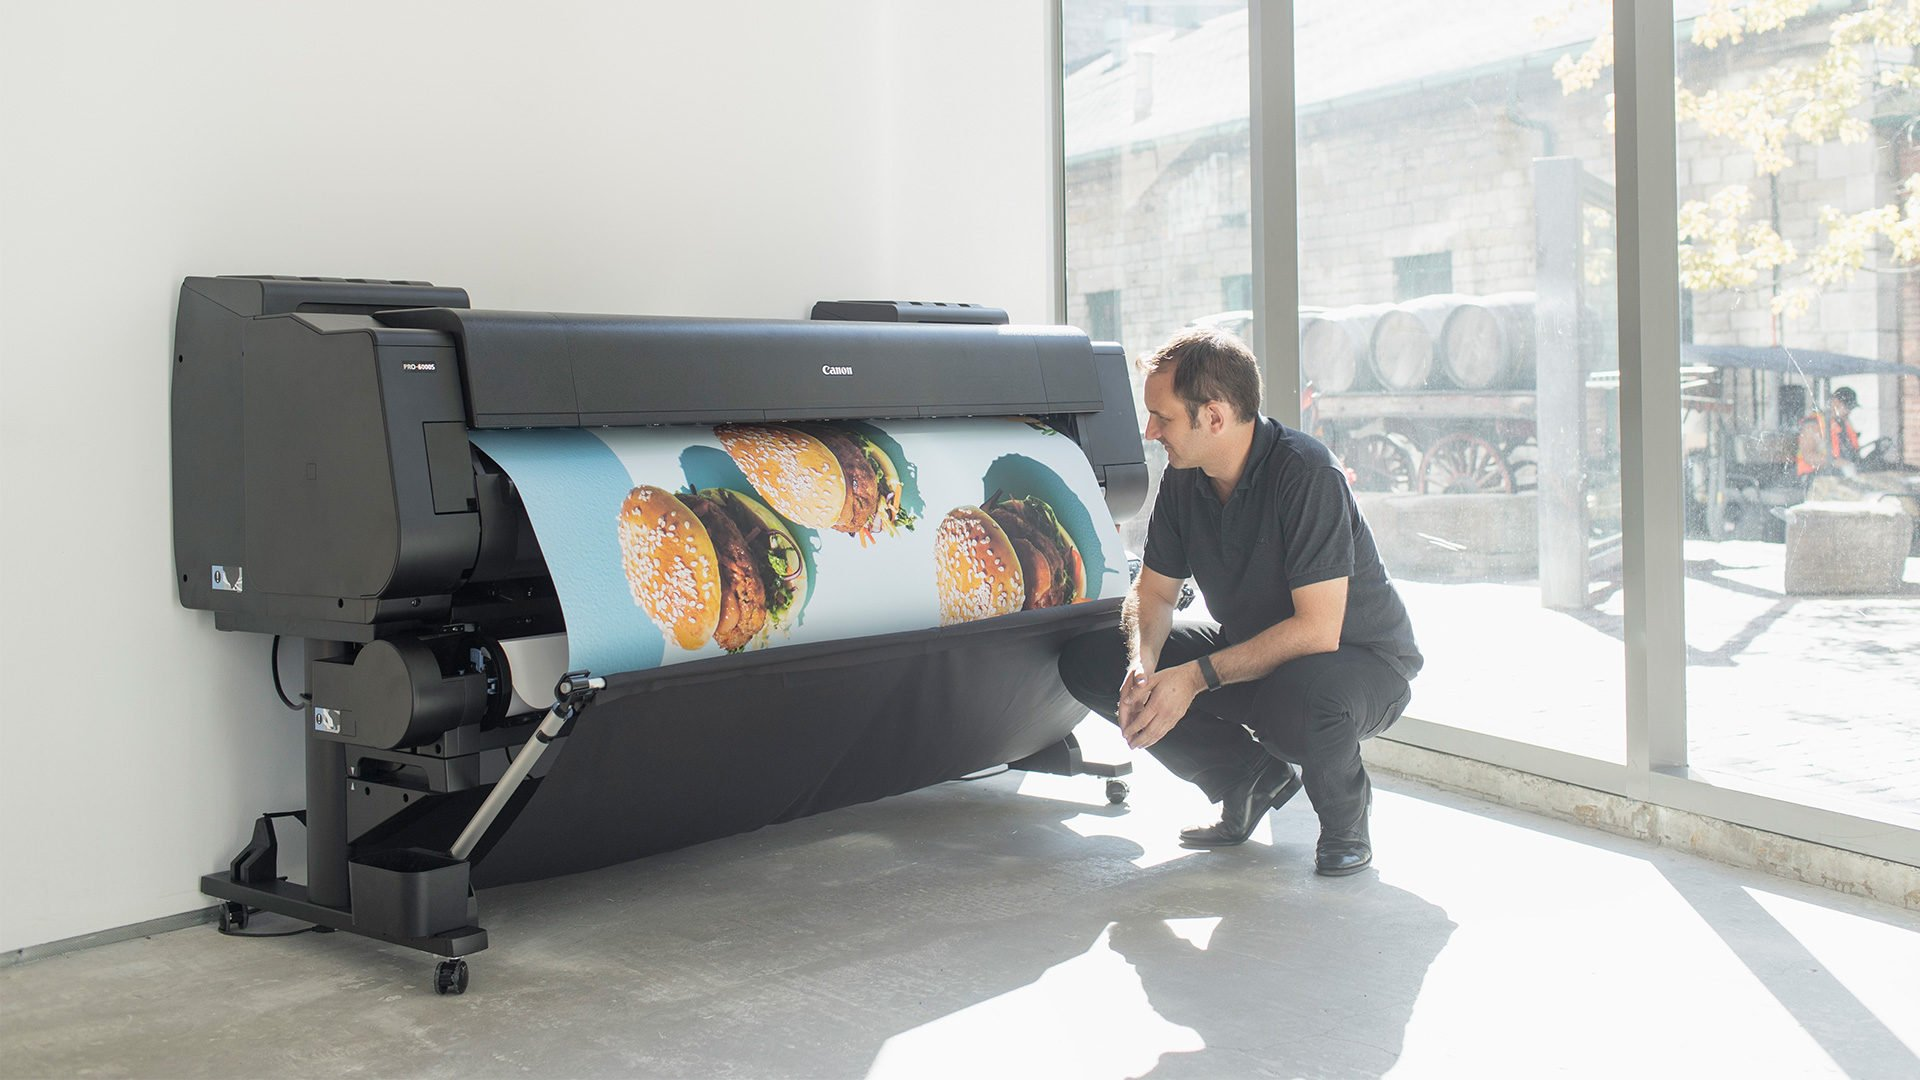 Thinking About Investing in a Wide-Format Printer? Here's What You Need to Consider